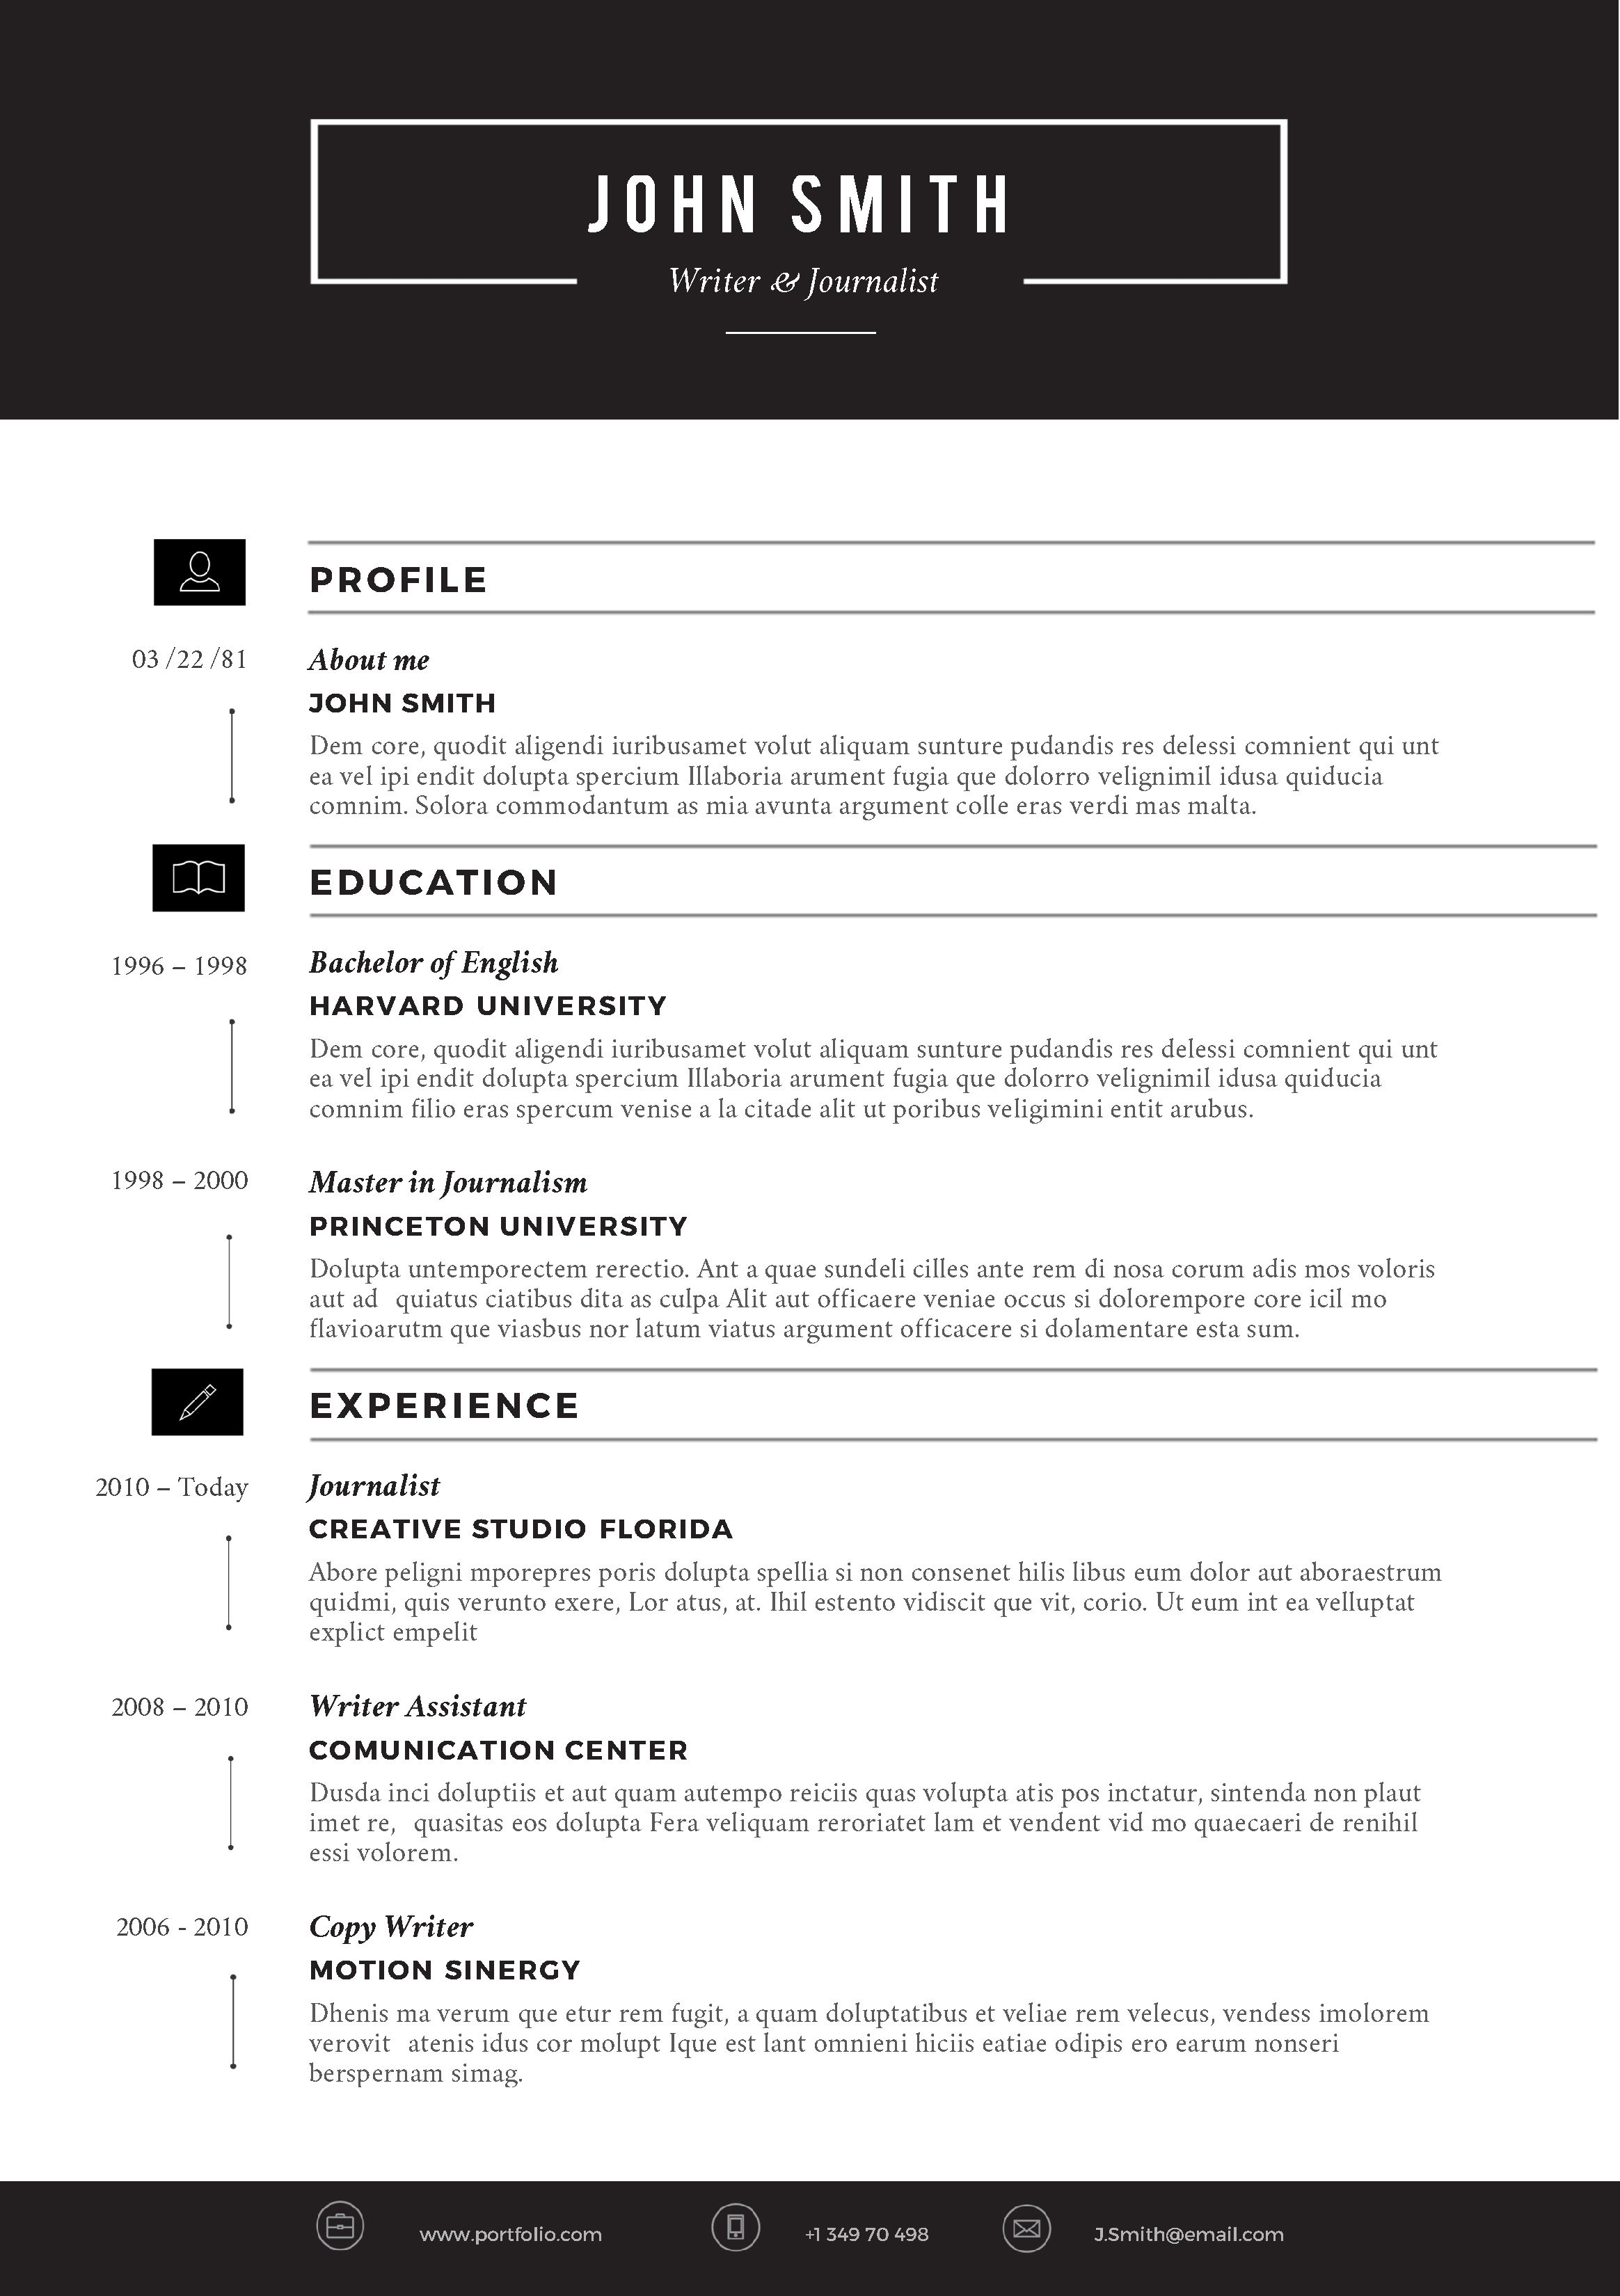 creative resume templates. Resume Example. Resume CV Cover Letter